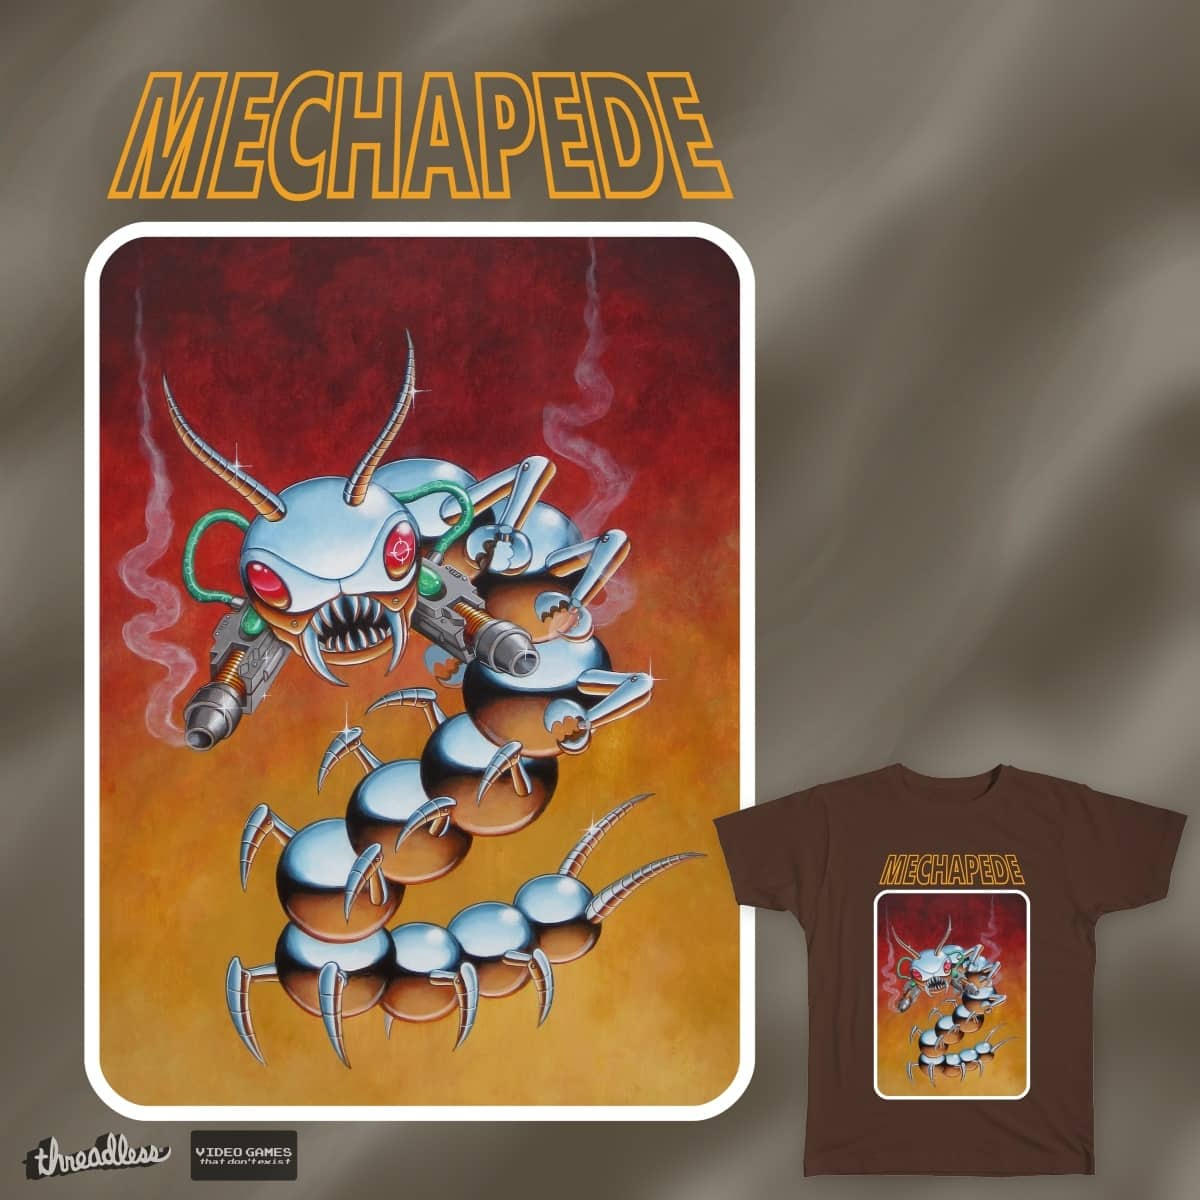 MECHAPEDE by Flarfy on Threadless